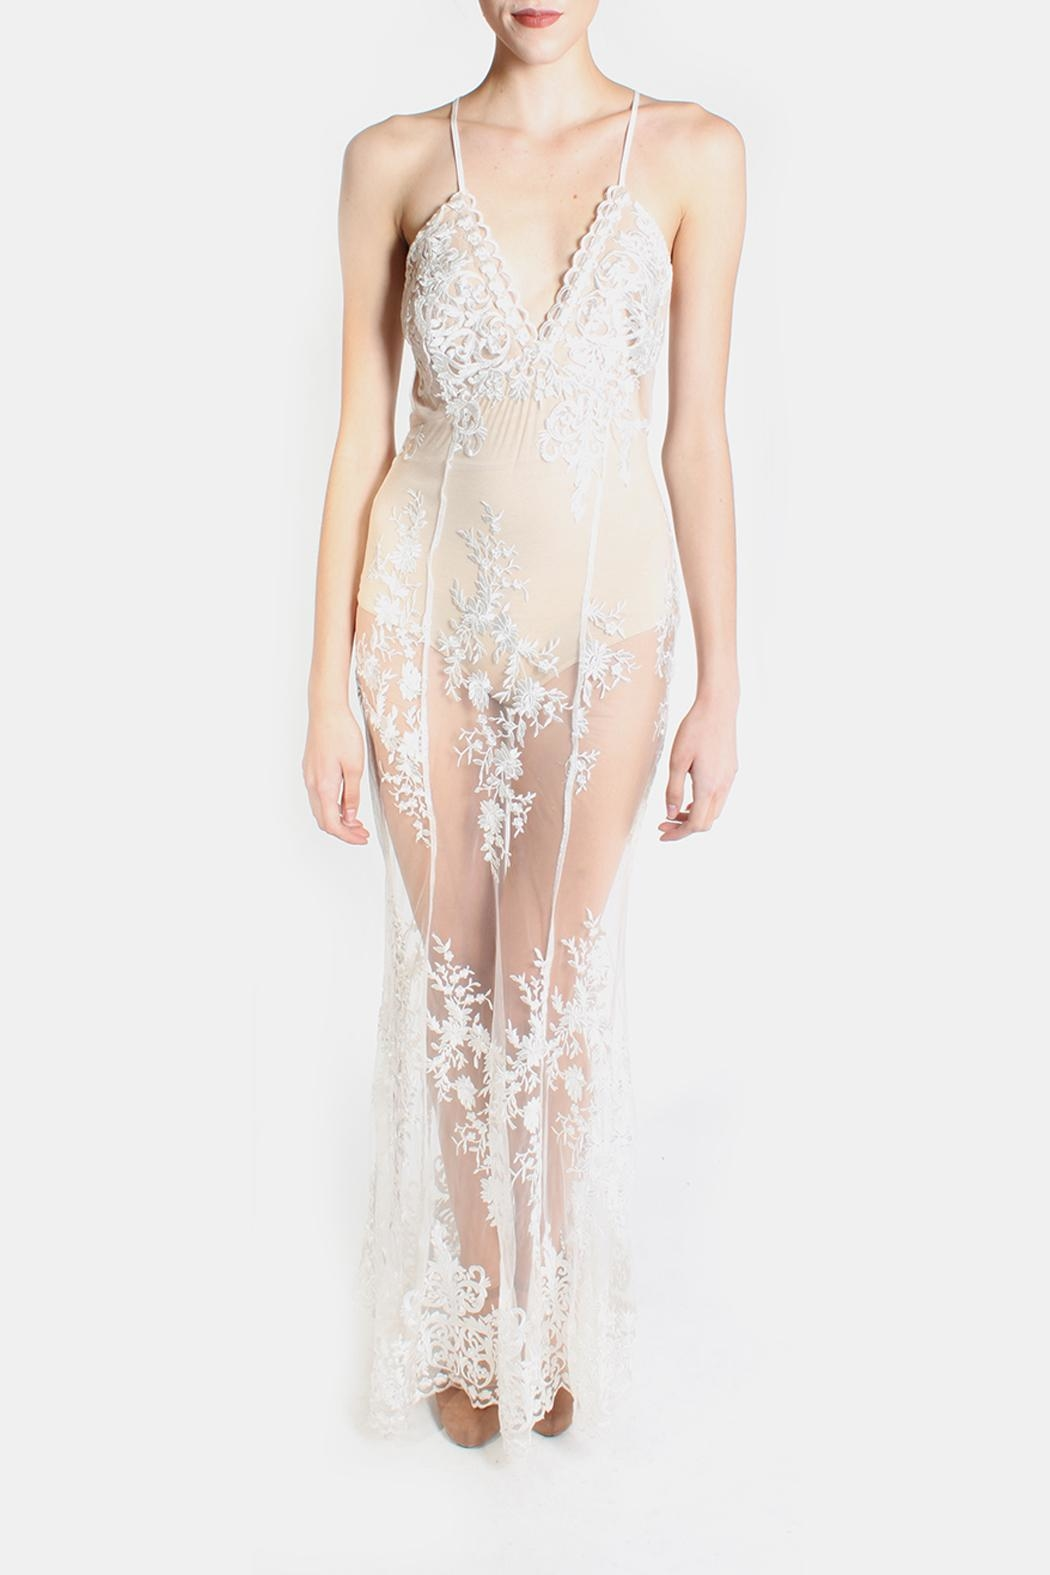 luxxel Glamour Bodysuit Lace Dress - Front Full Image